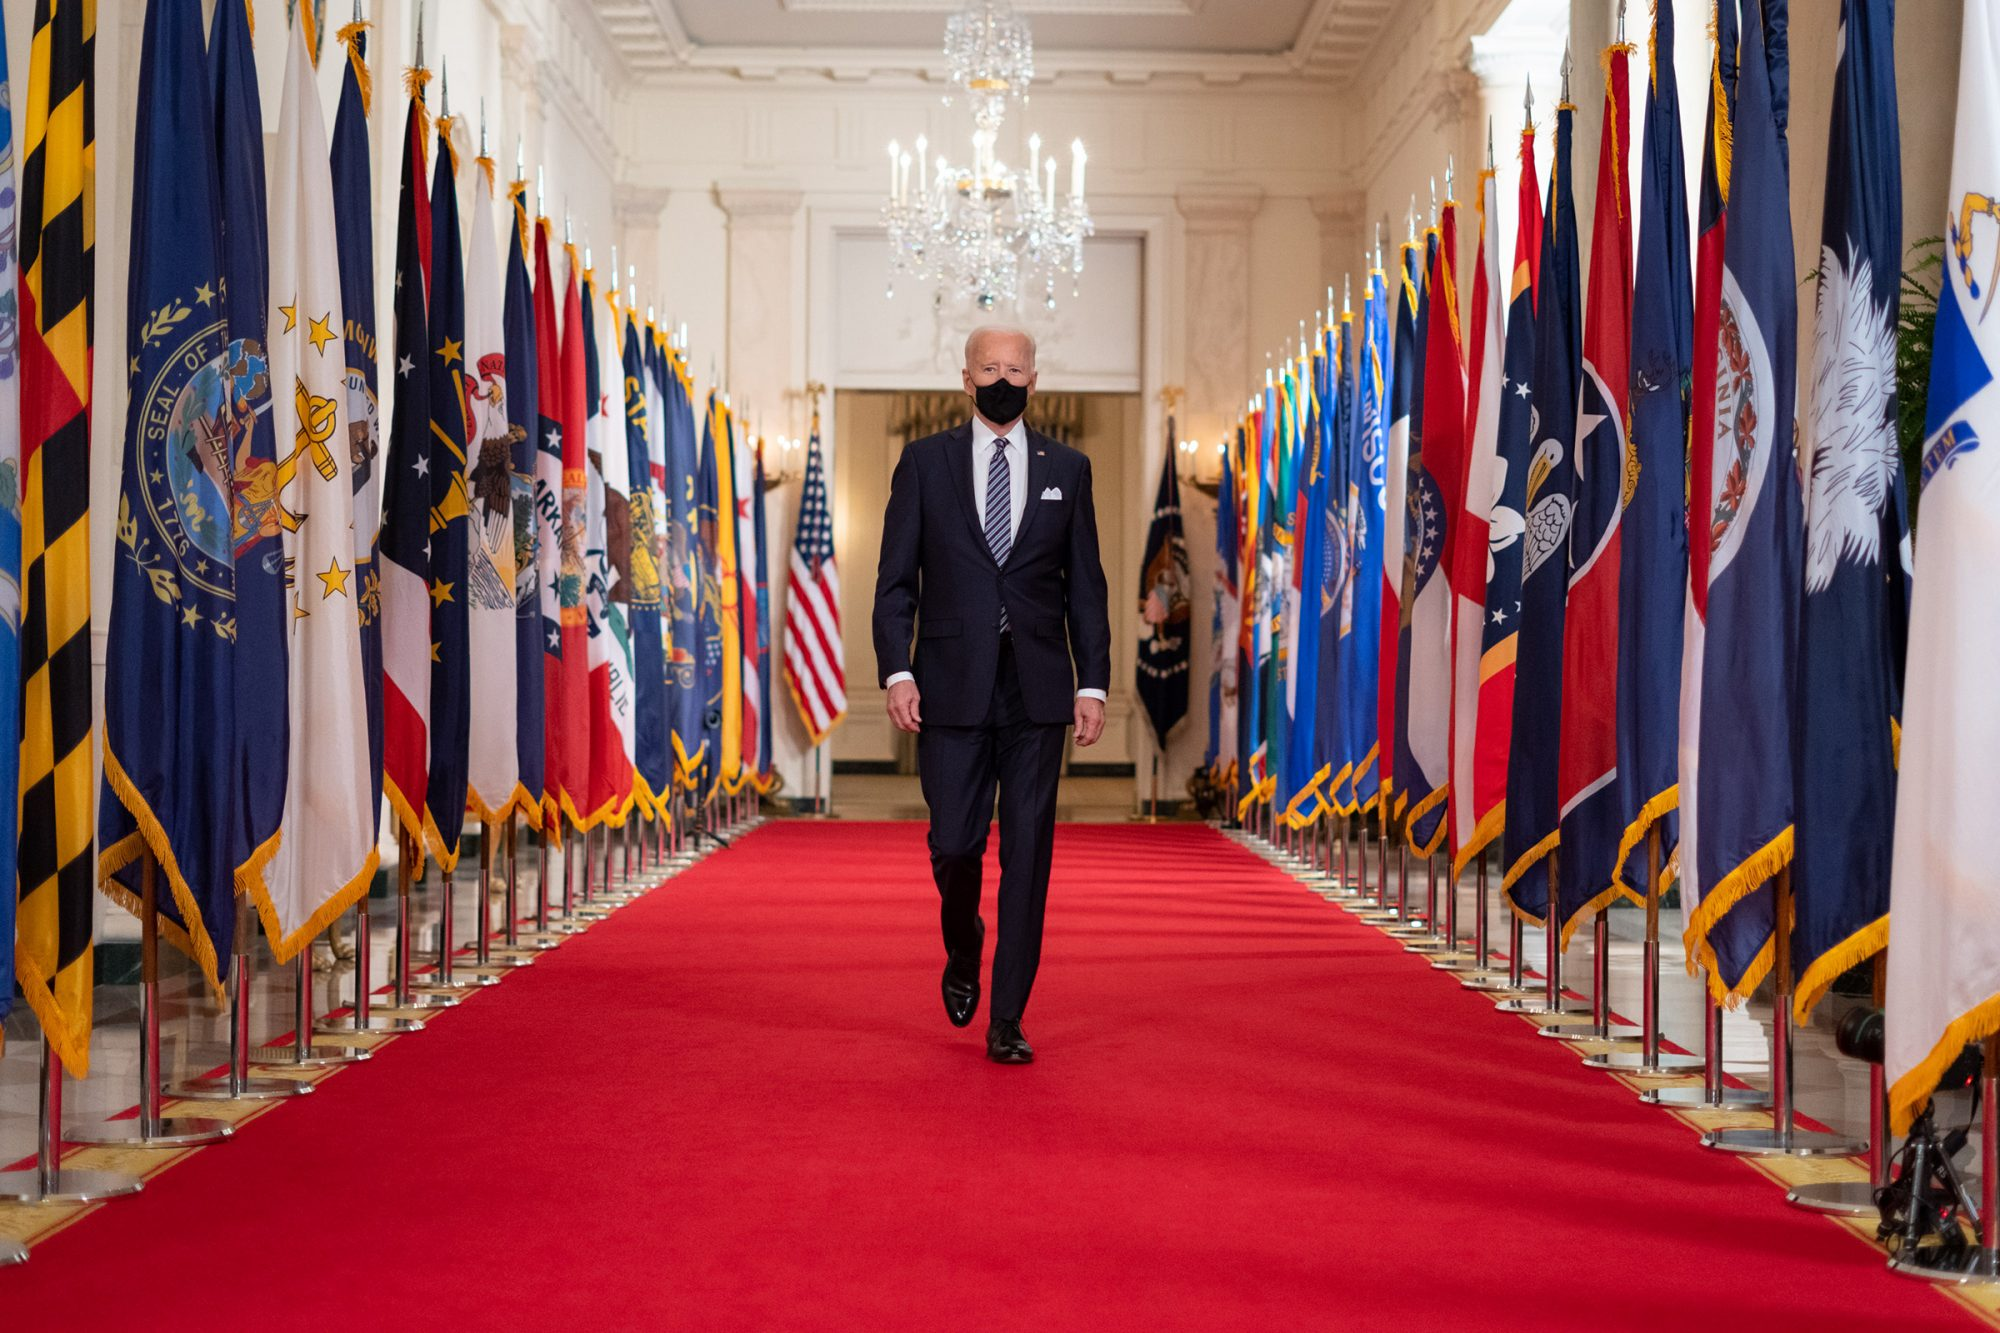 President Joe Biden walks from the State Dining Room of the White House to a podium in the Cross Hall of the White House Thursday, March 11, 2021, to deliver remarks on the one year anniversary of the COVID-19 Shutdown.